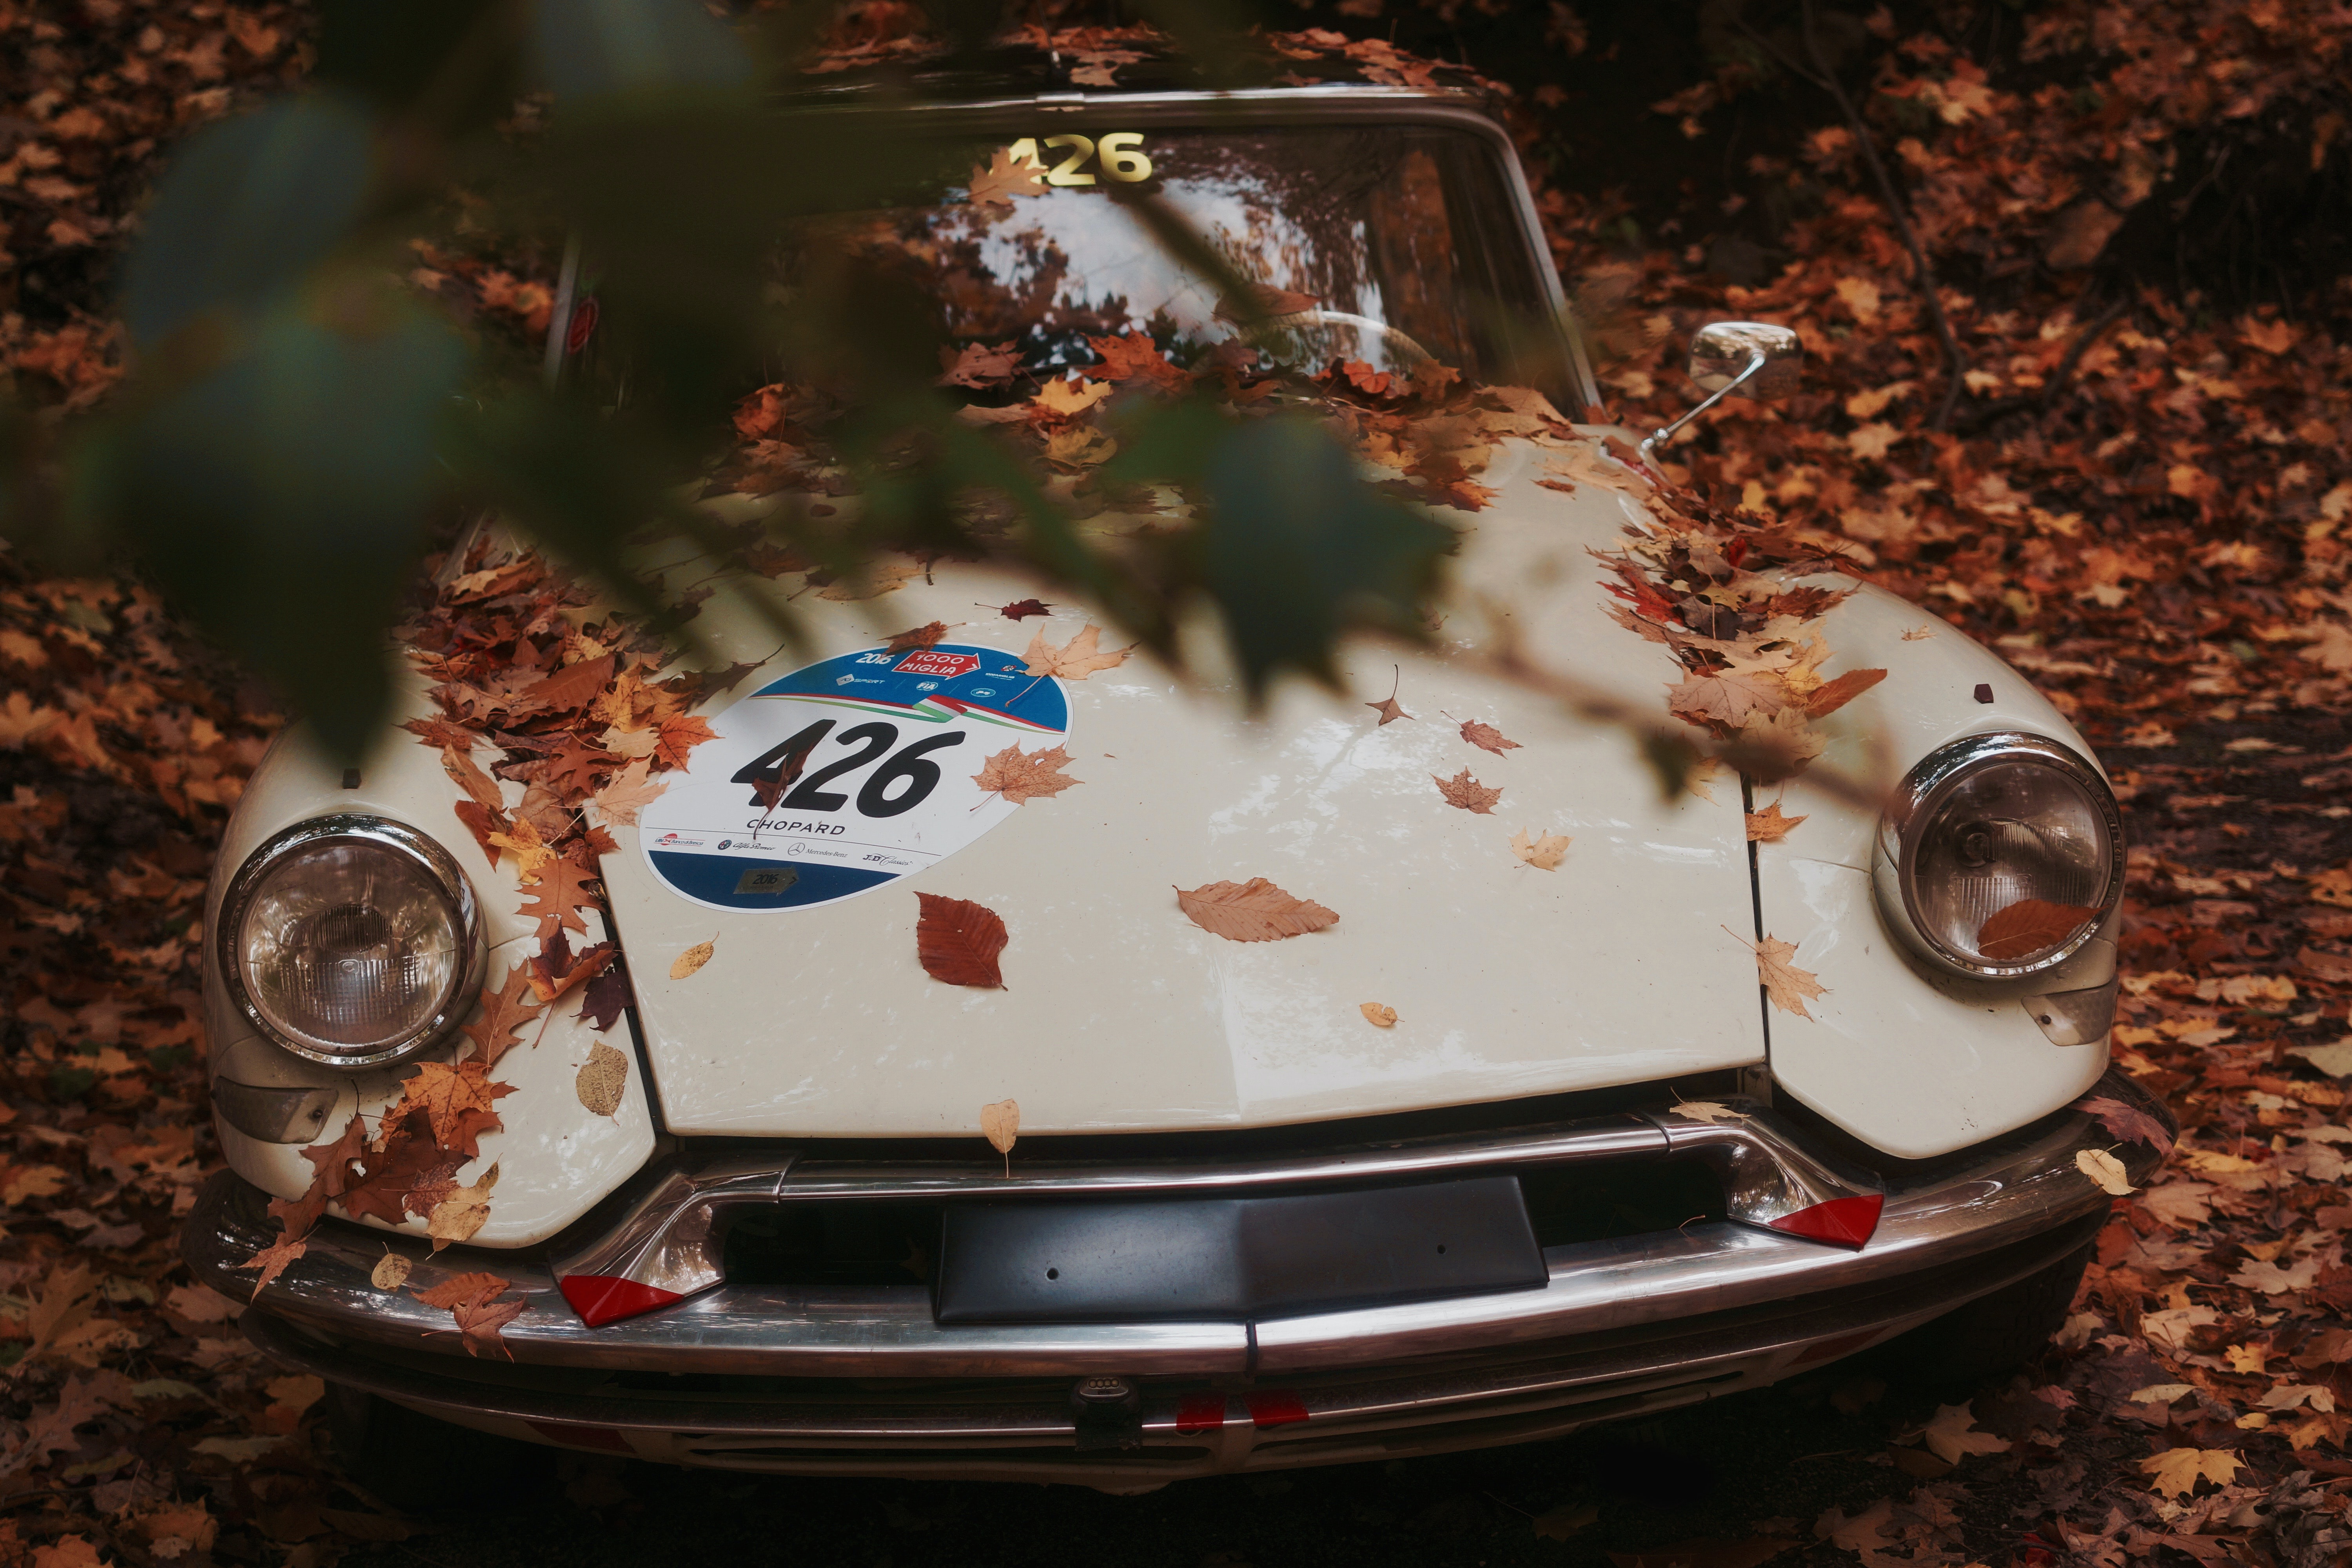 Front view of a vintage car, partially obstructed by a tree branch, covered in dried leaves.